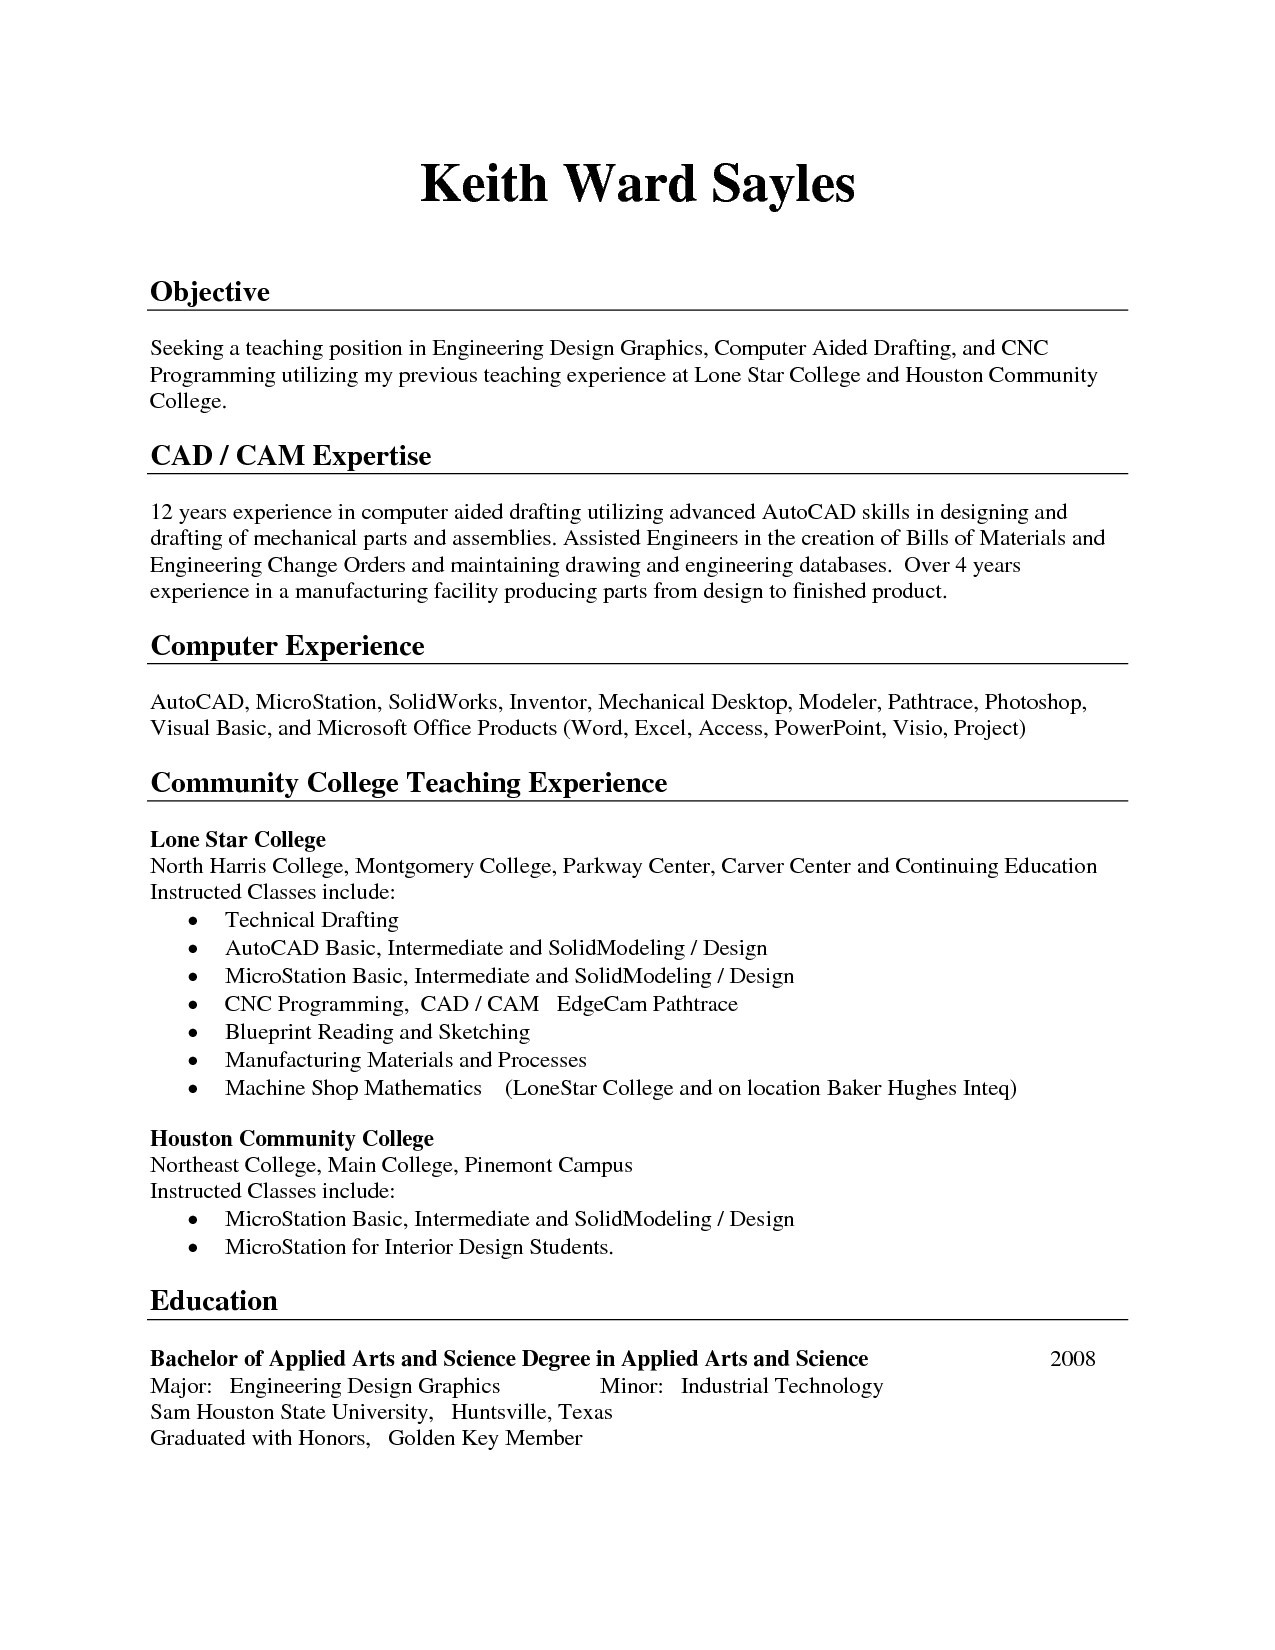 Oilfield Resume Template - Sample Resume for Oil and Gas Industry Valid Oil Field Resume Choice